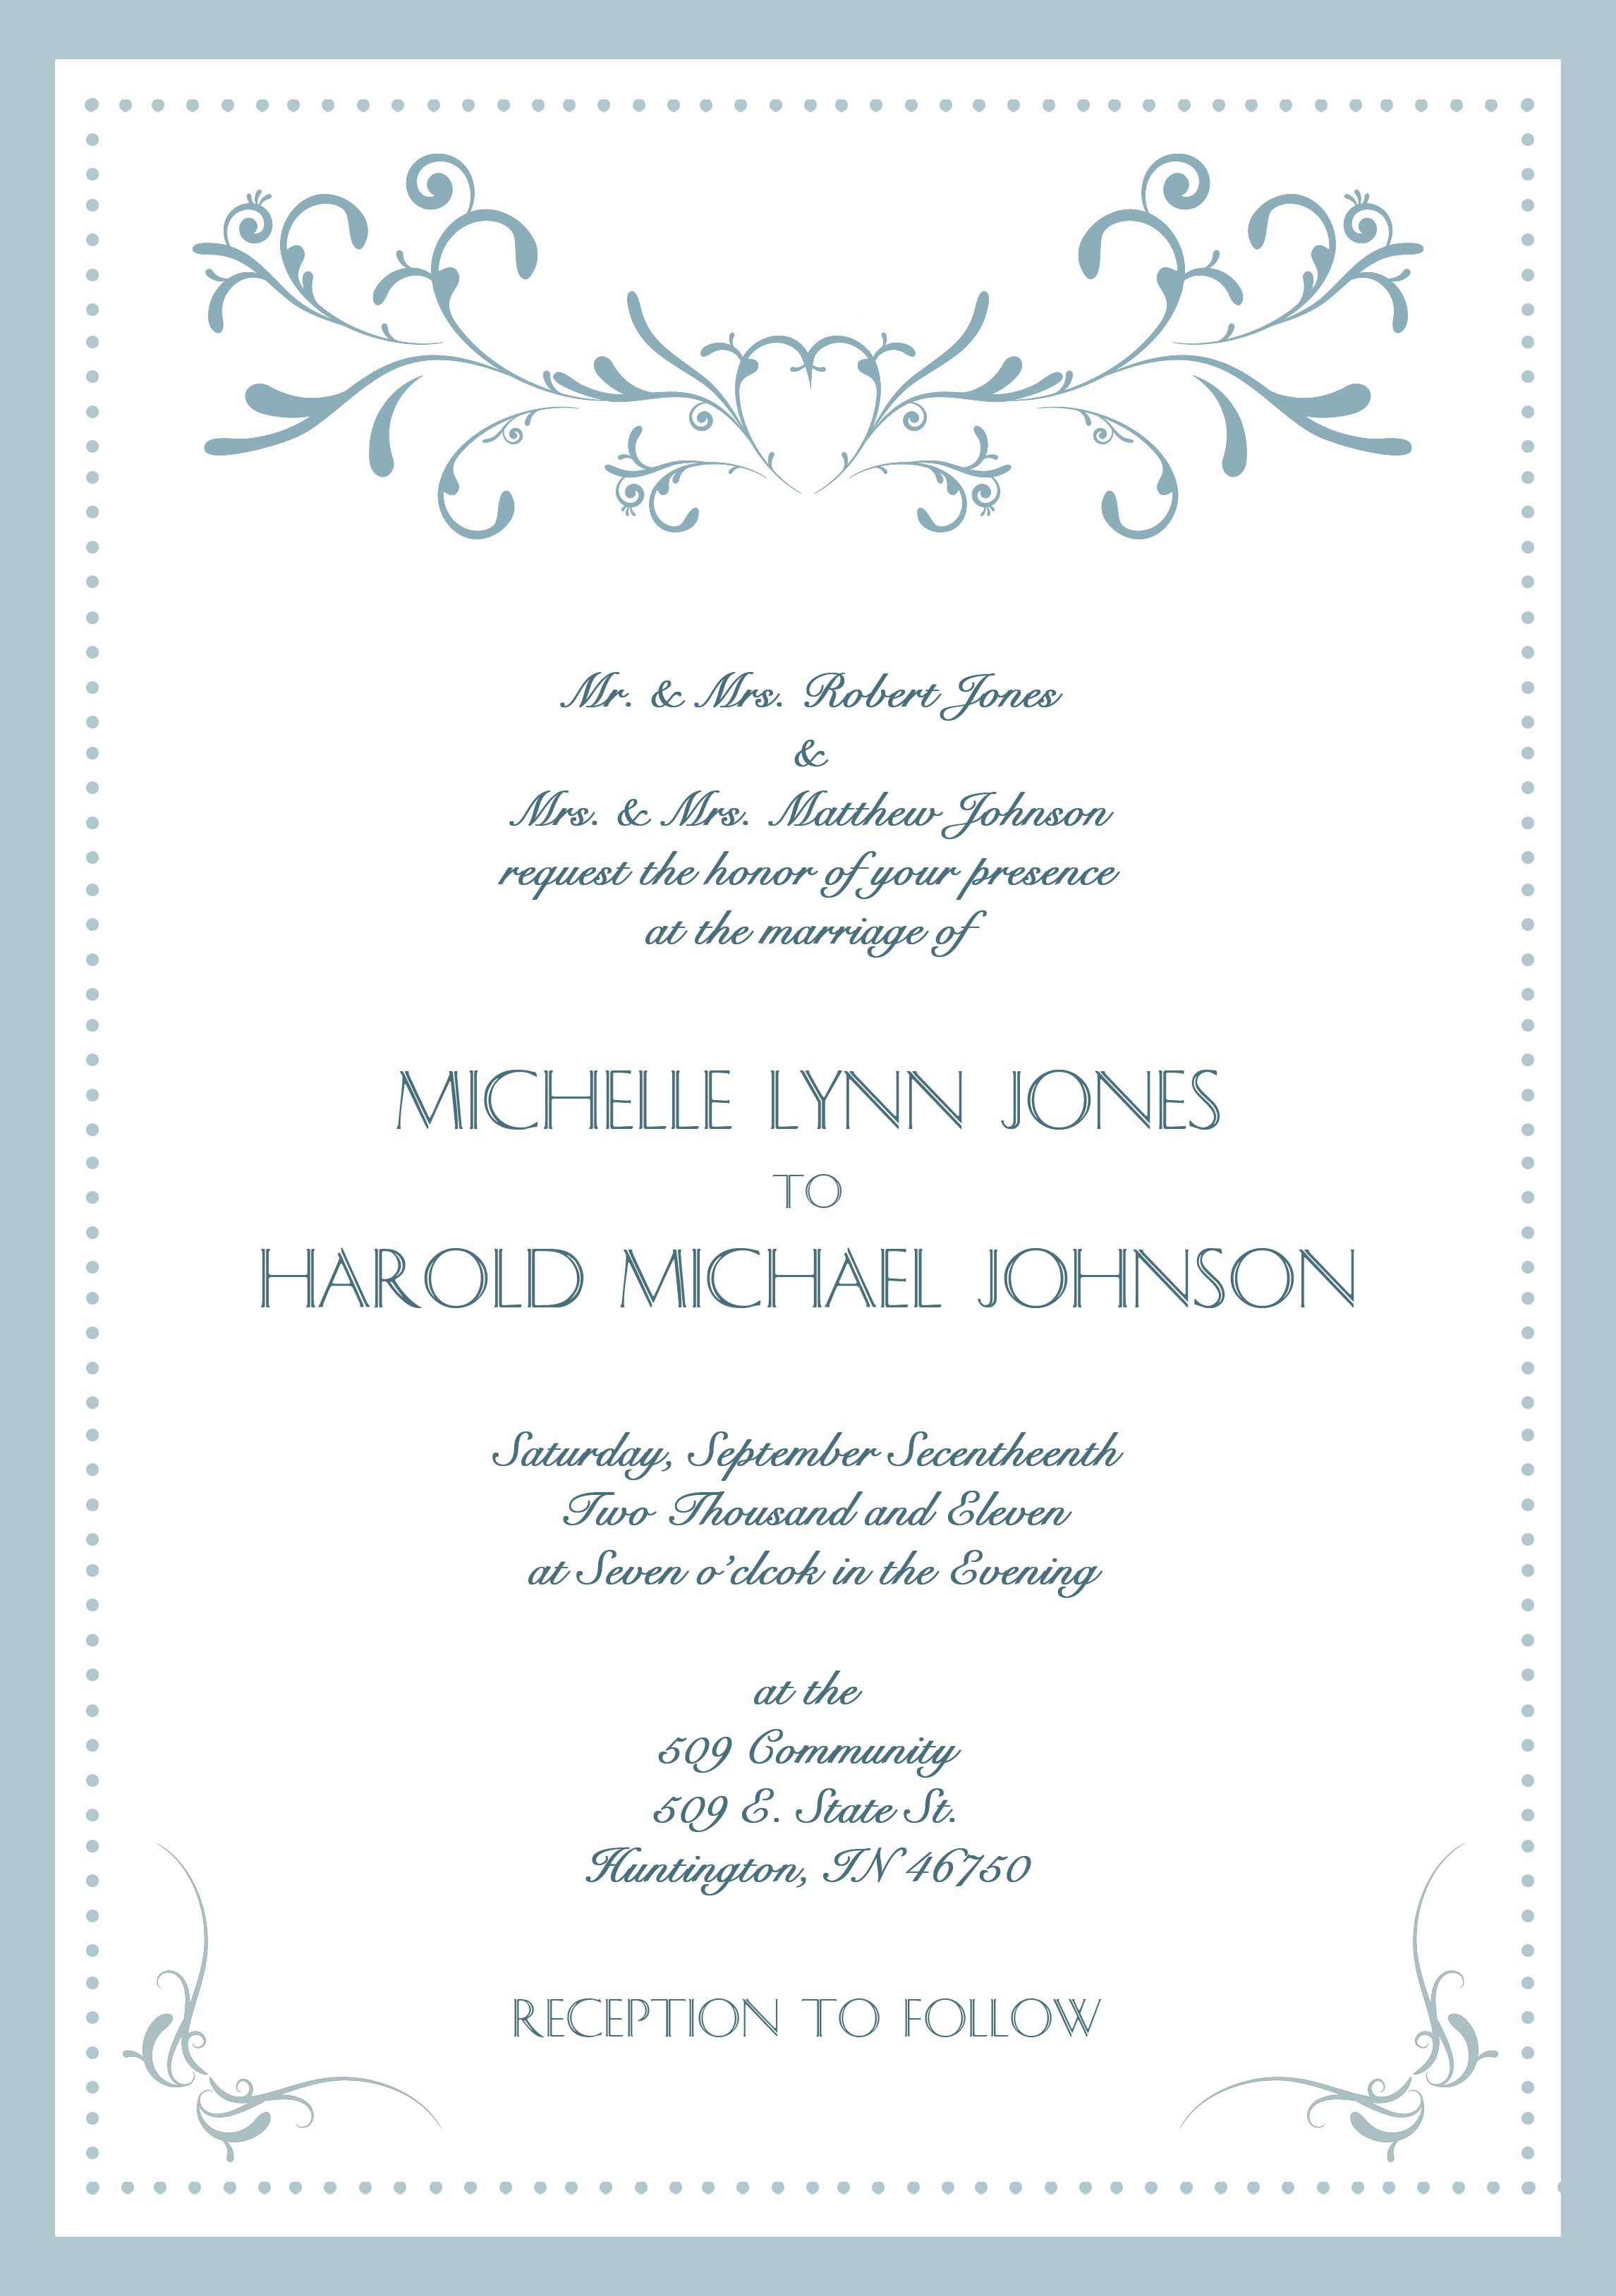 Sample Wedding Invitation Card